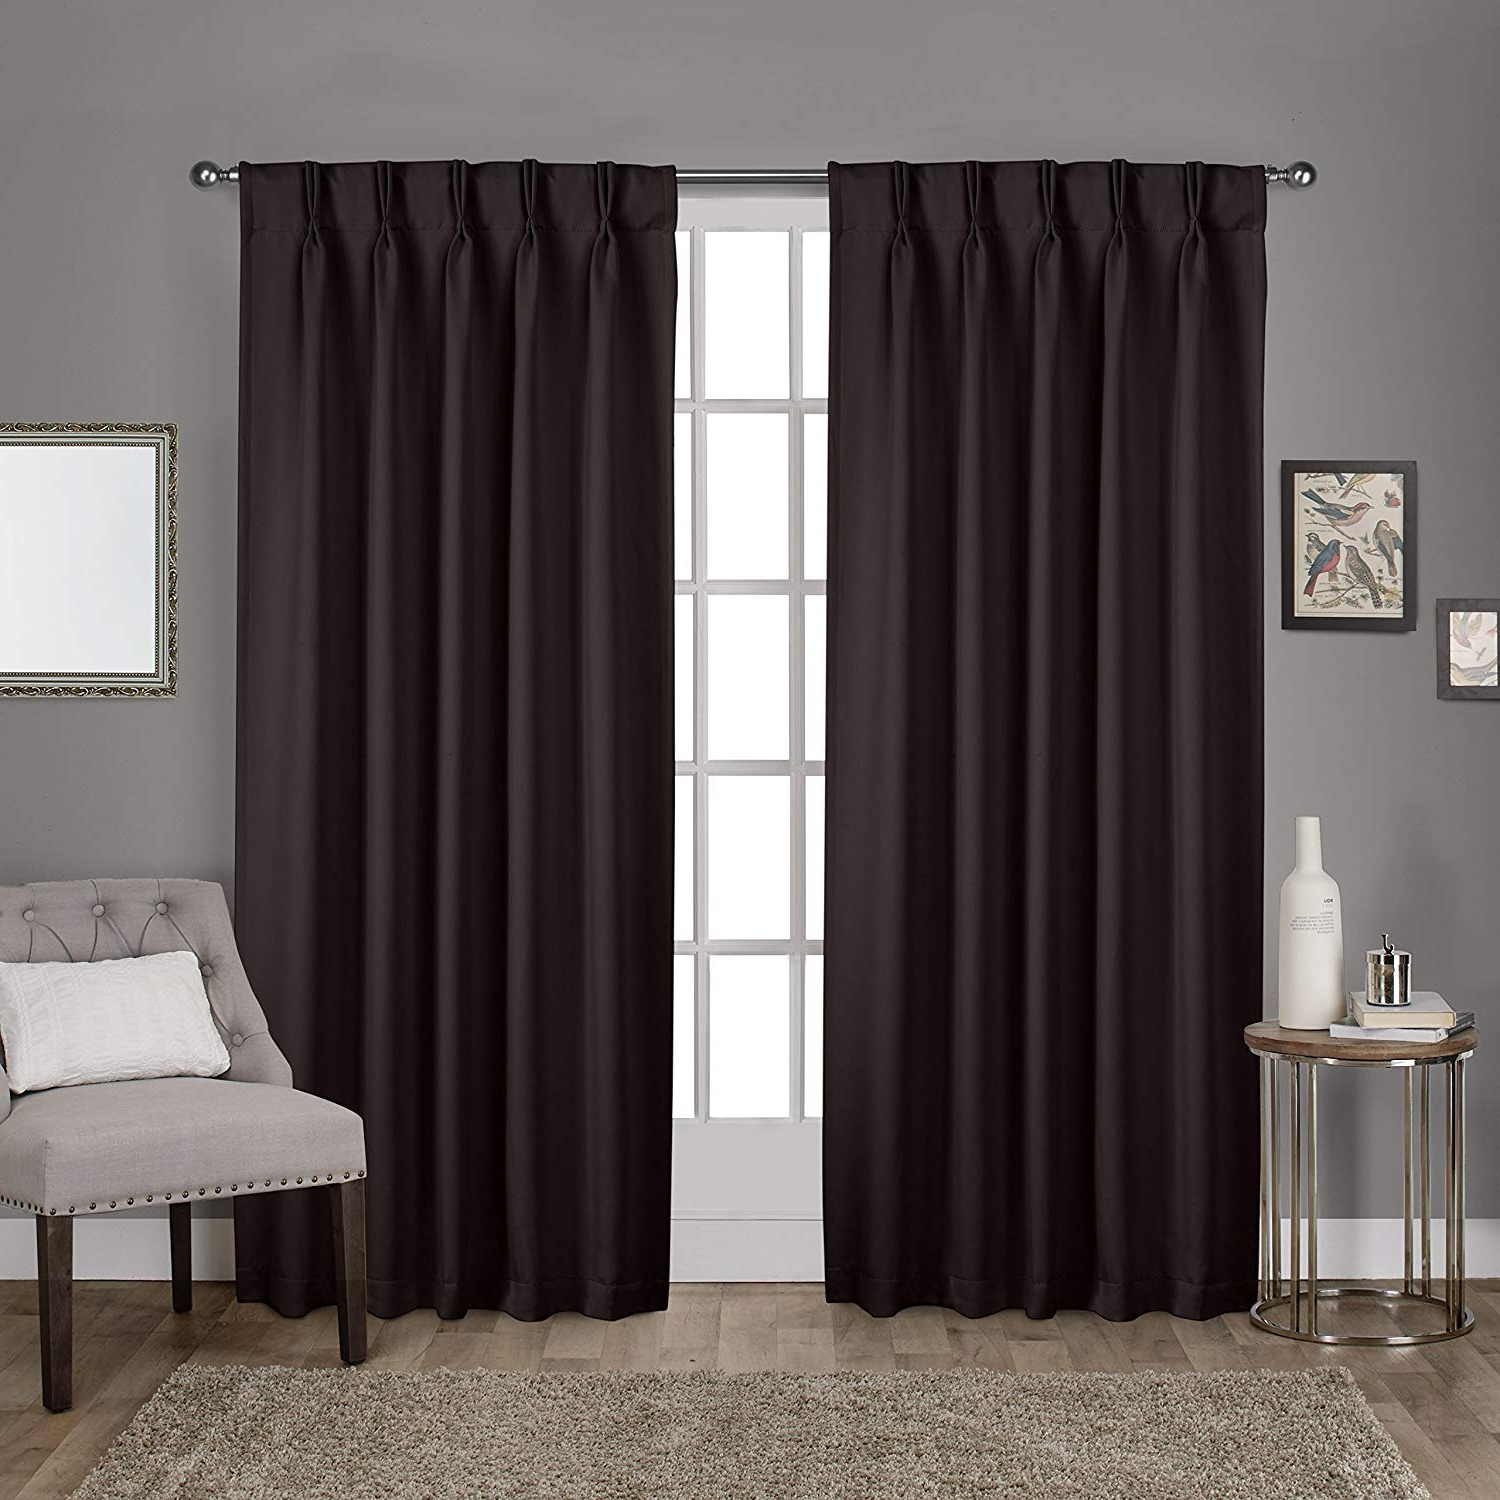 Most Popular Exclusive Home Curtains Sateen Pinch Pleat Woven Blackout Back Tab Window  Curtain Panel Pair, Espresso, 52X96 With Regard To Sateen Woven Blackout Curtain Panel Pairs With Pinch Pleat Top (View 10 of 20)